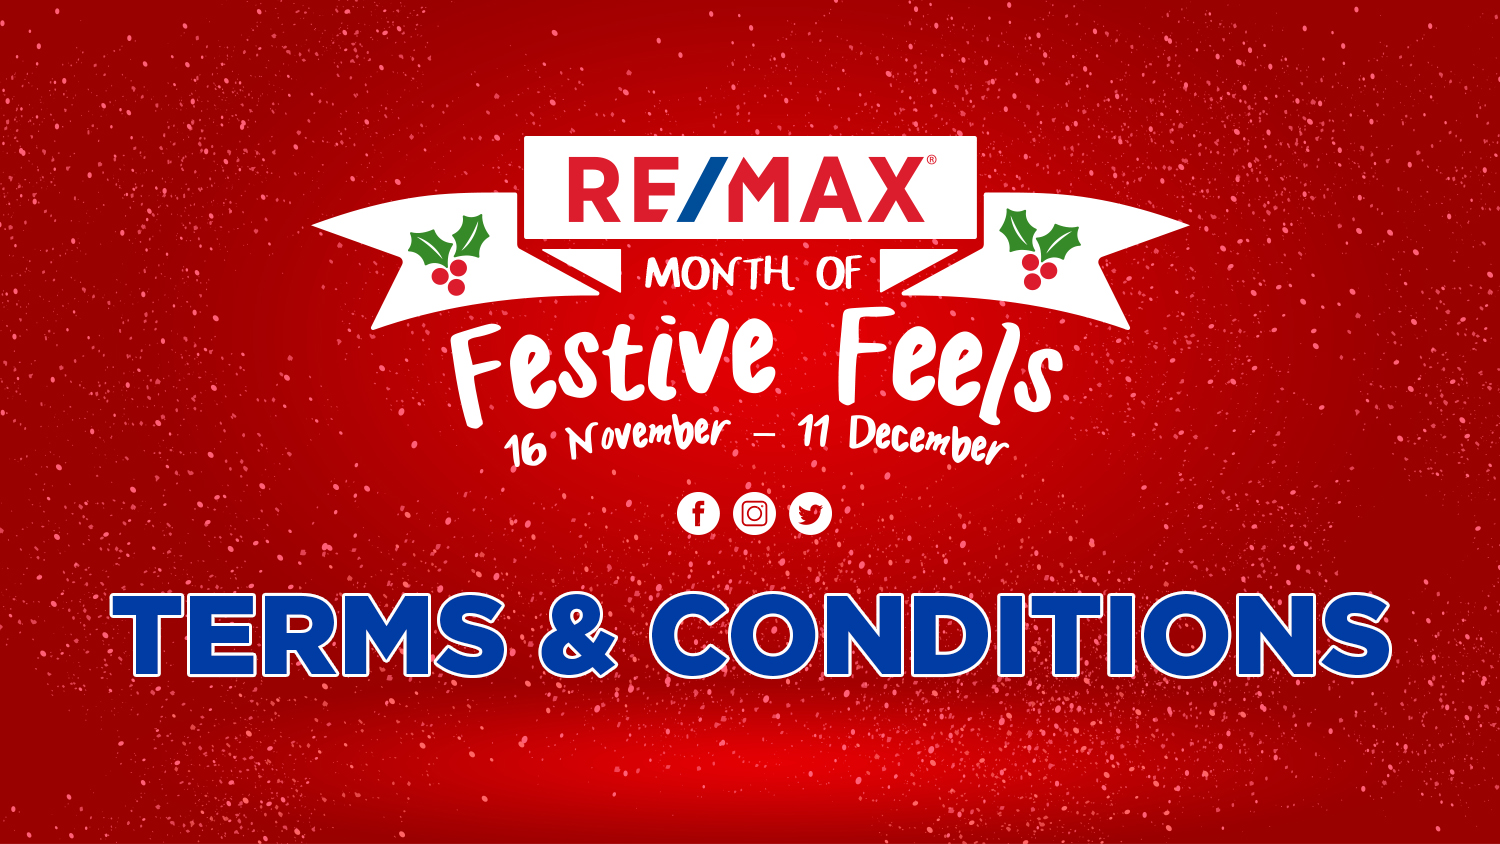 RE/MAX MONTH OF FESTIVE FEELS